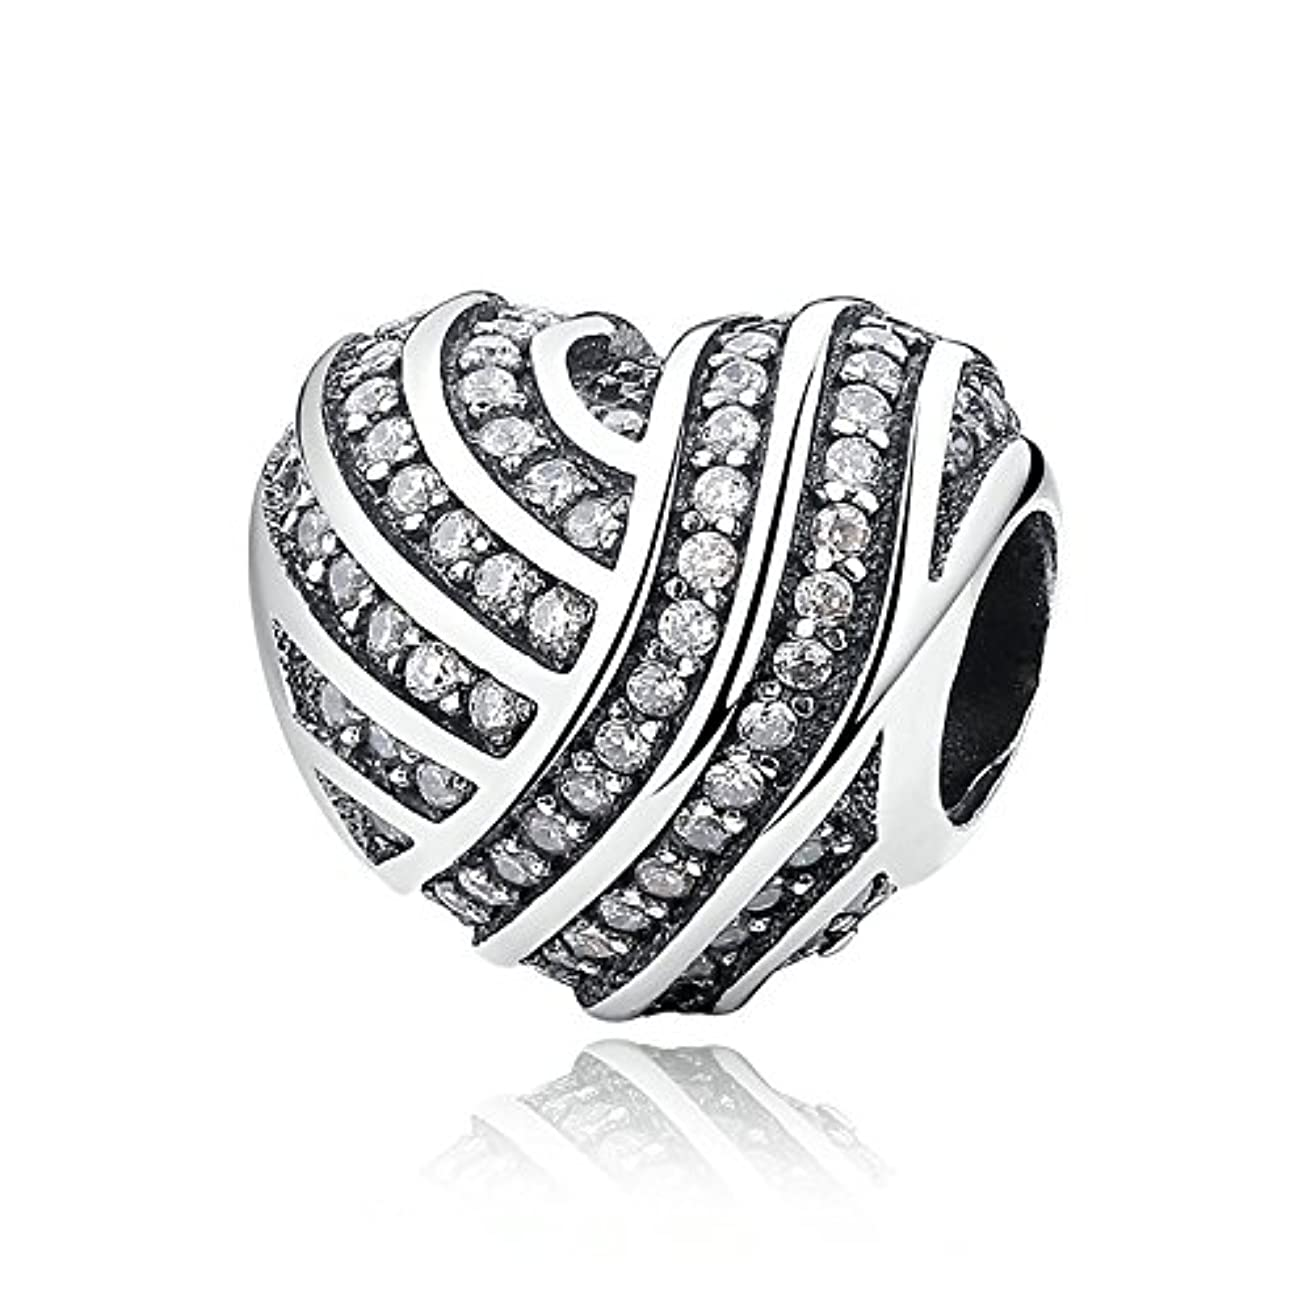 Love Lines Clear CZ 925 Sterling Silver Bead Fits Pandora Charm Bracelet